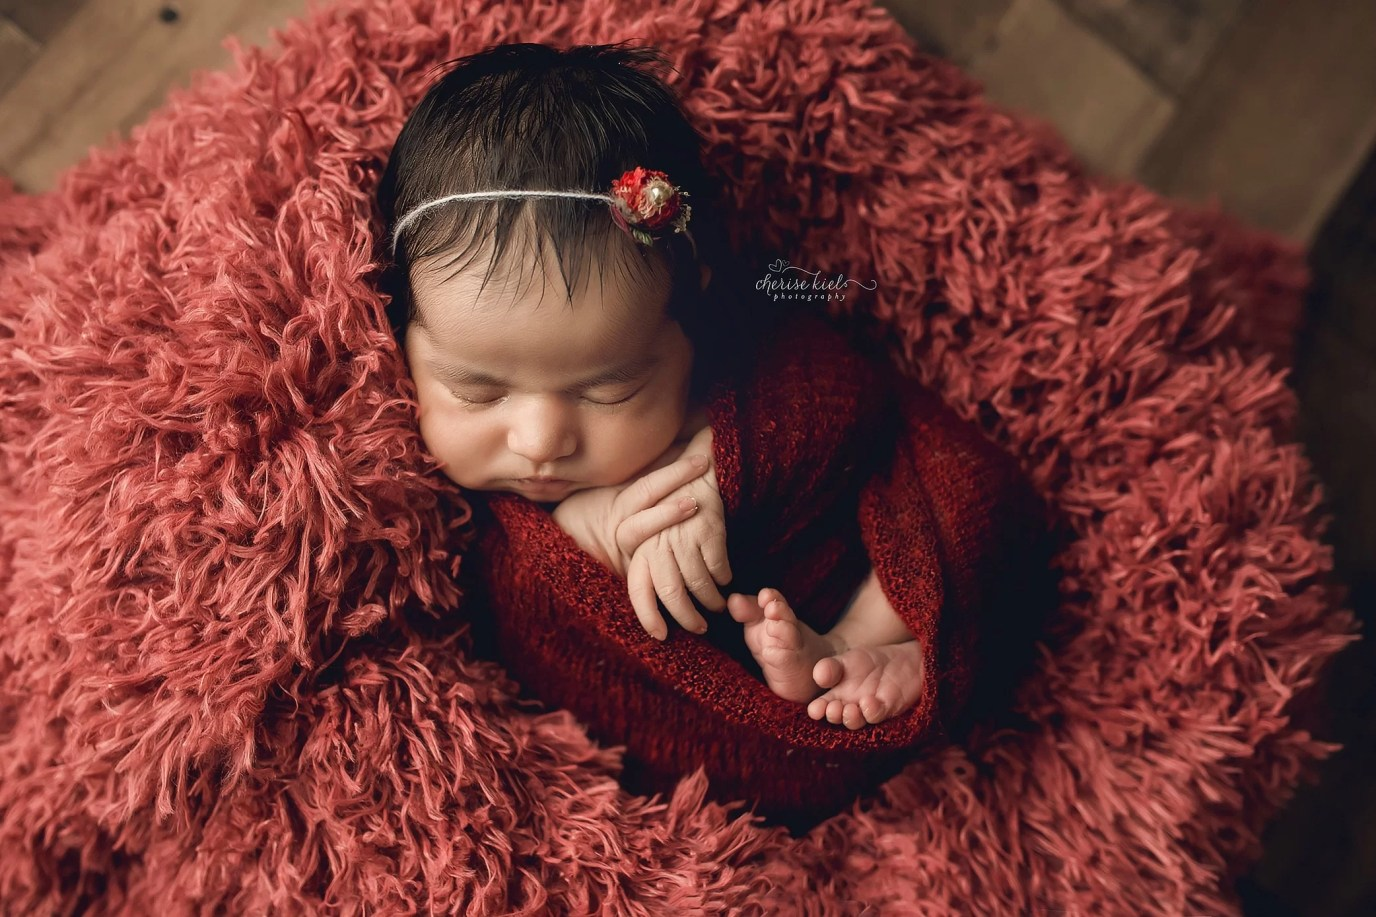 Cabernet auburn newborn photography baby girl swaddle fur headband studio set